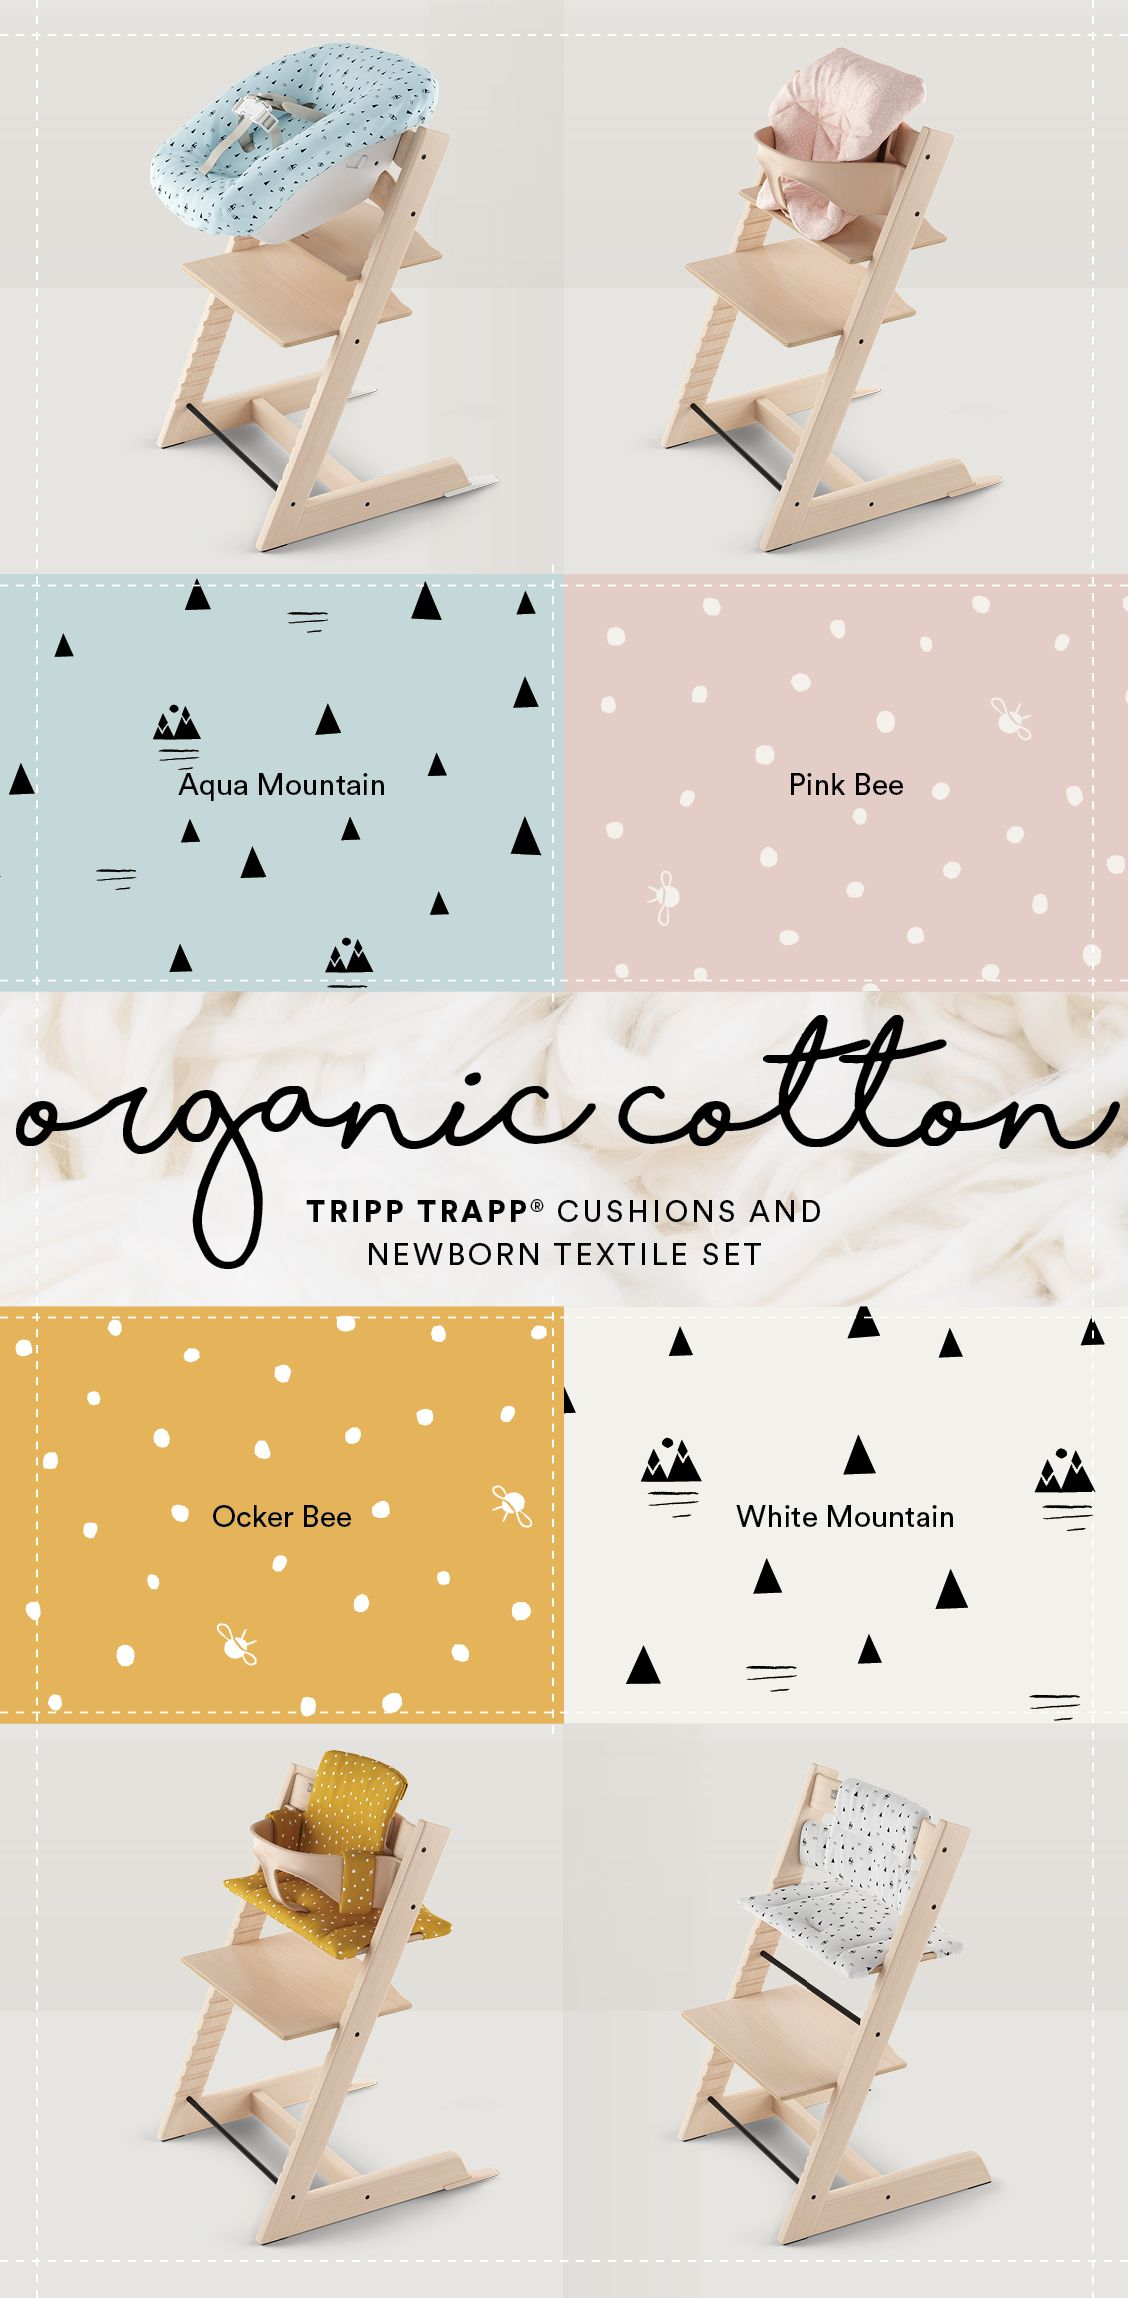 New 100 Organic Cotton Cushions And Accessories For Your Baby S